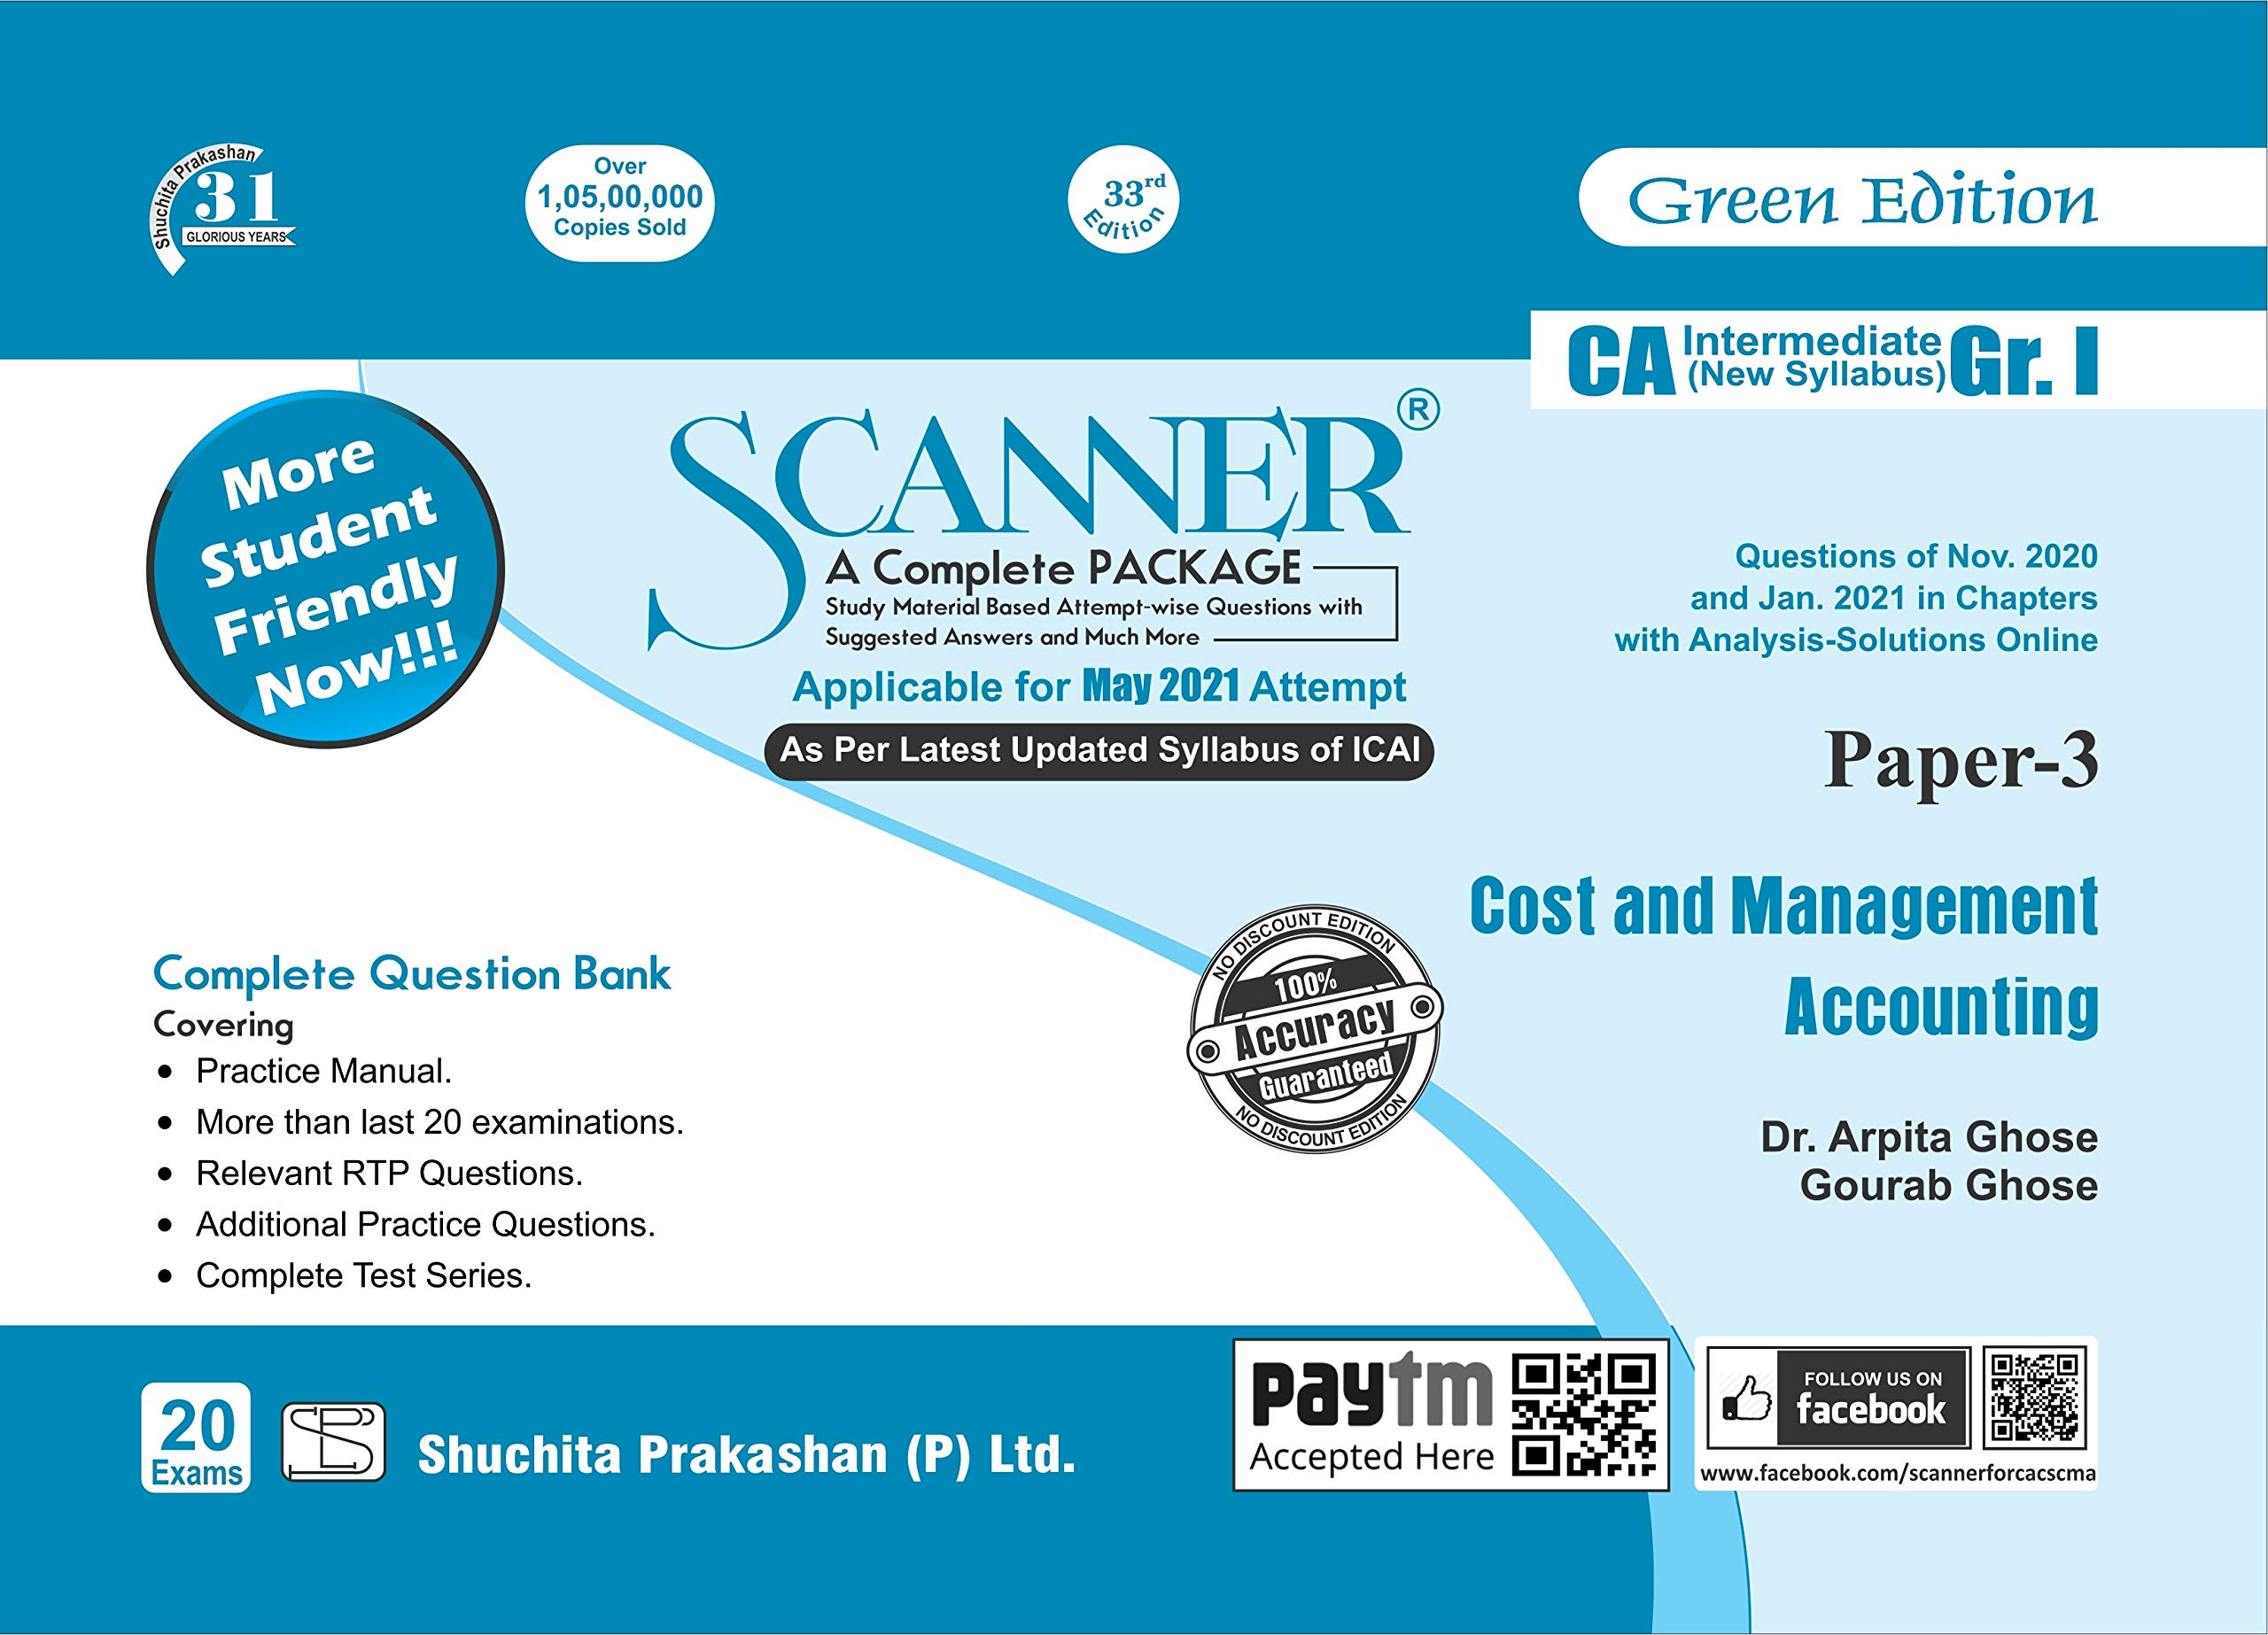 Shuchita CA Inter Group I Paper-3 Solved Scanner Cost and Management Accounting for 2021 ATTEMPT